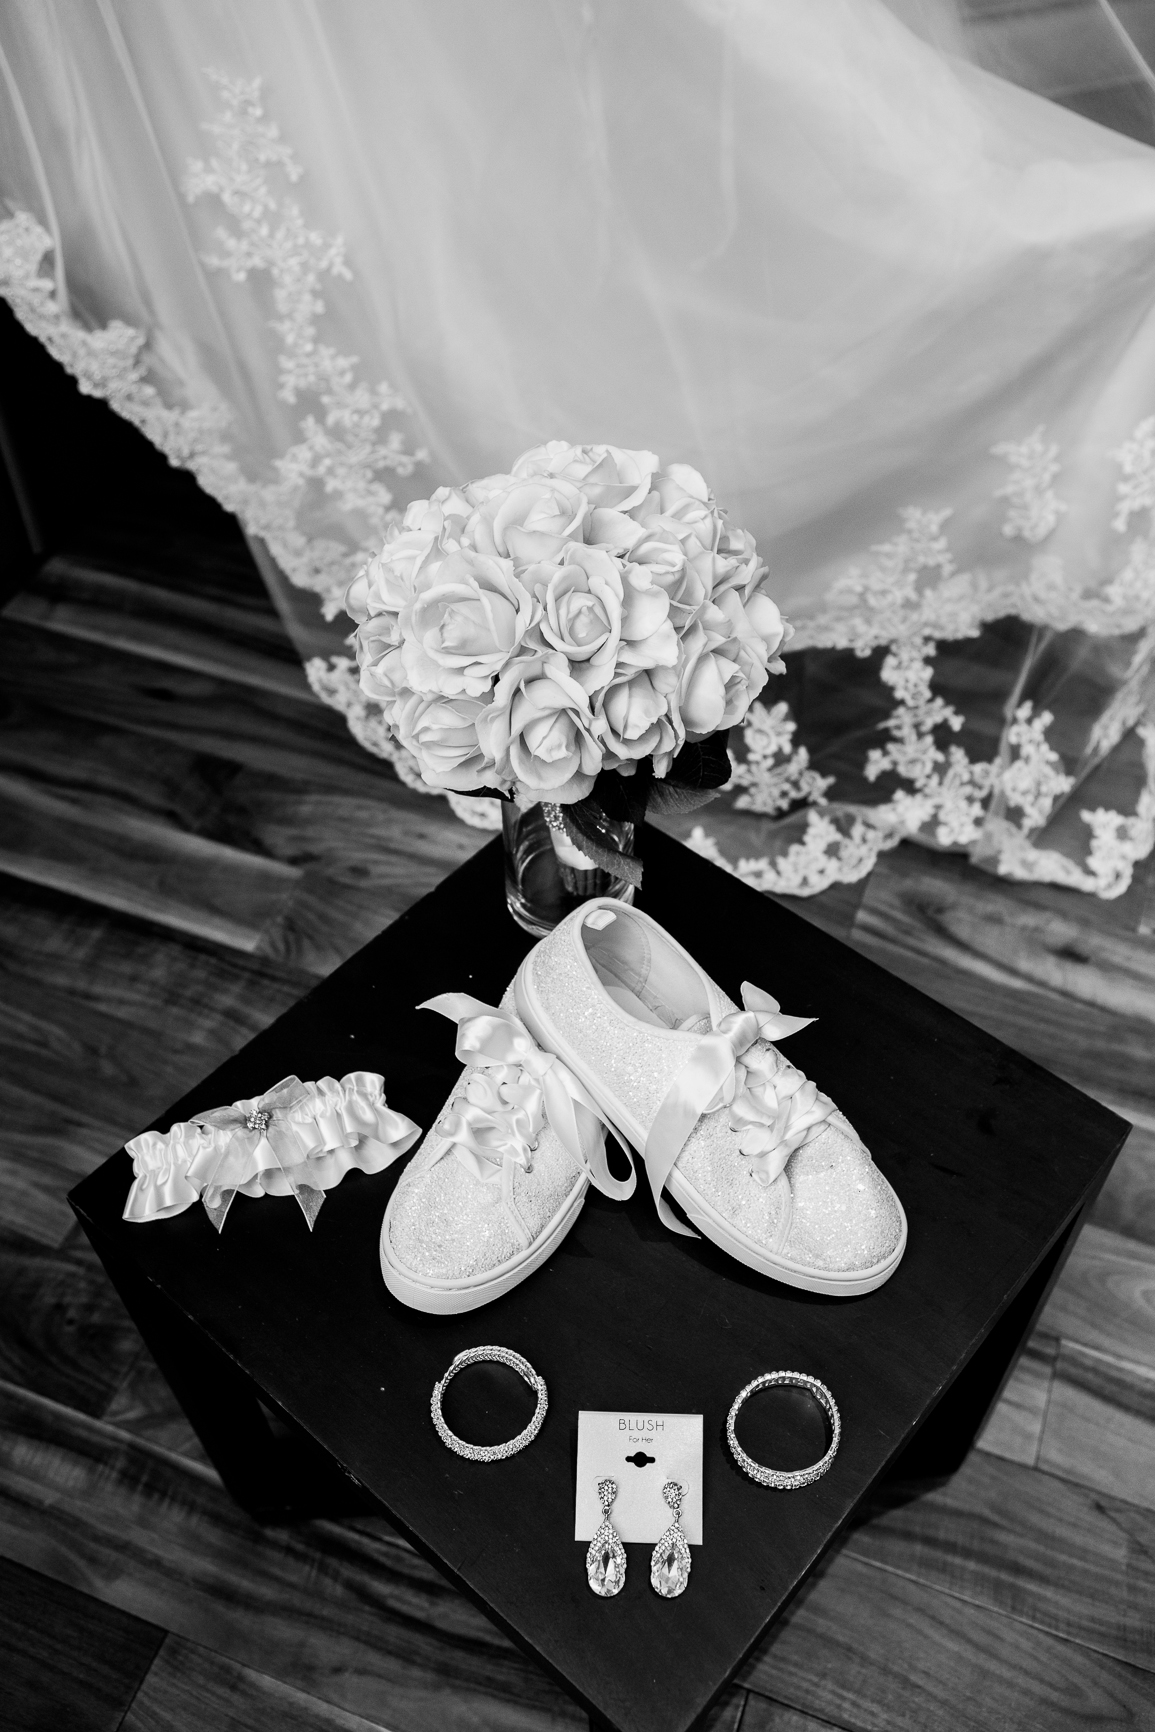 Noah's Morrisville wedding photographer - 101 studio llc -1.jpg